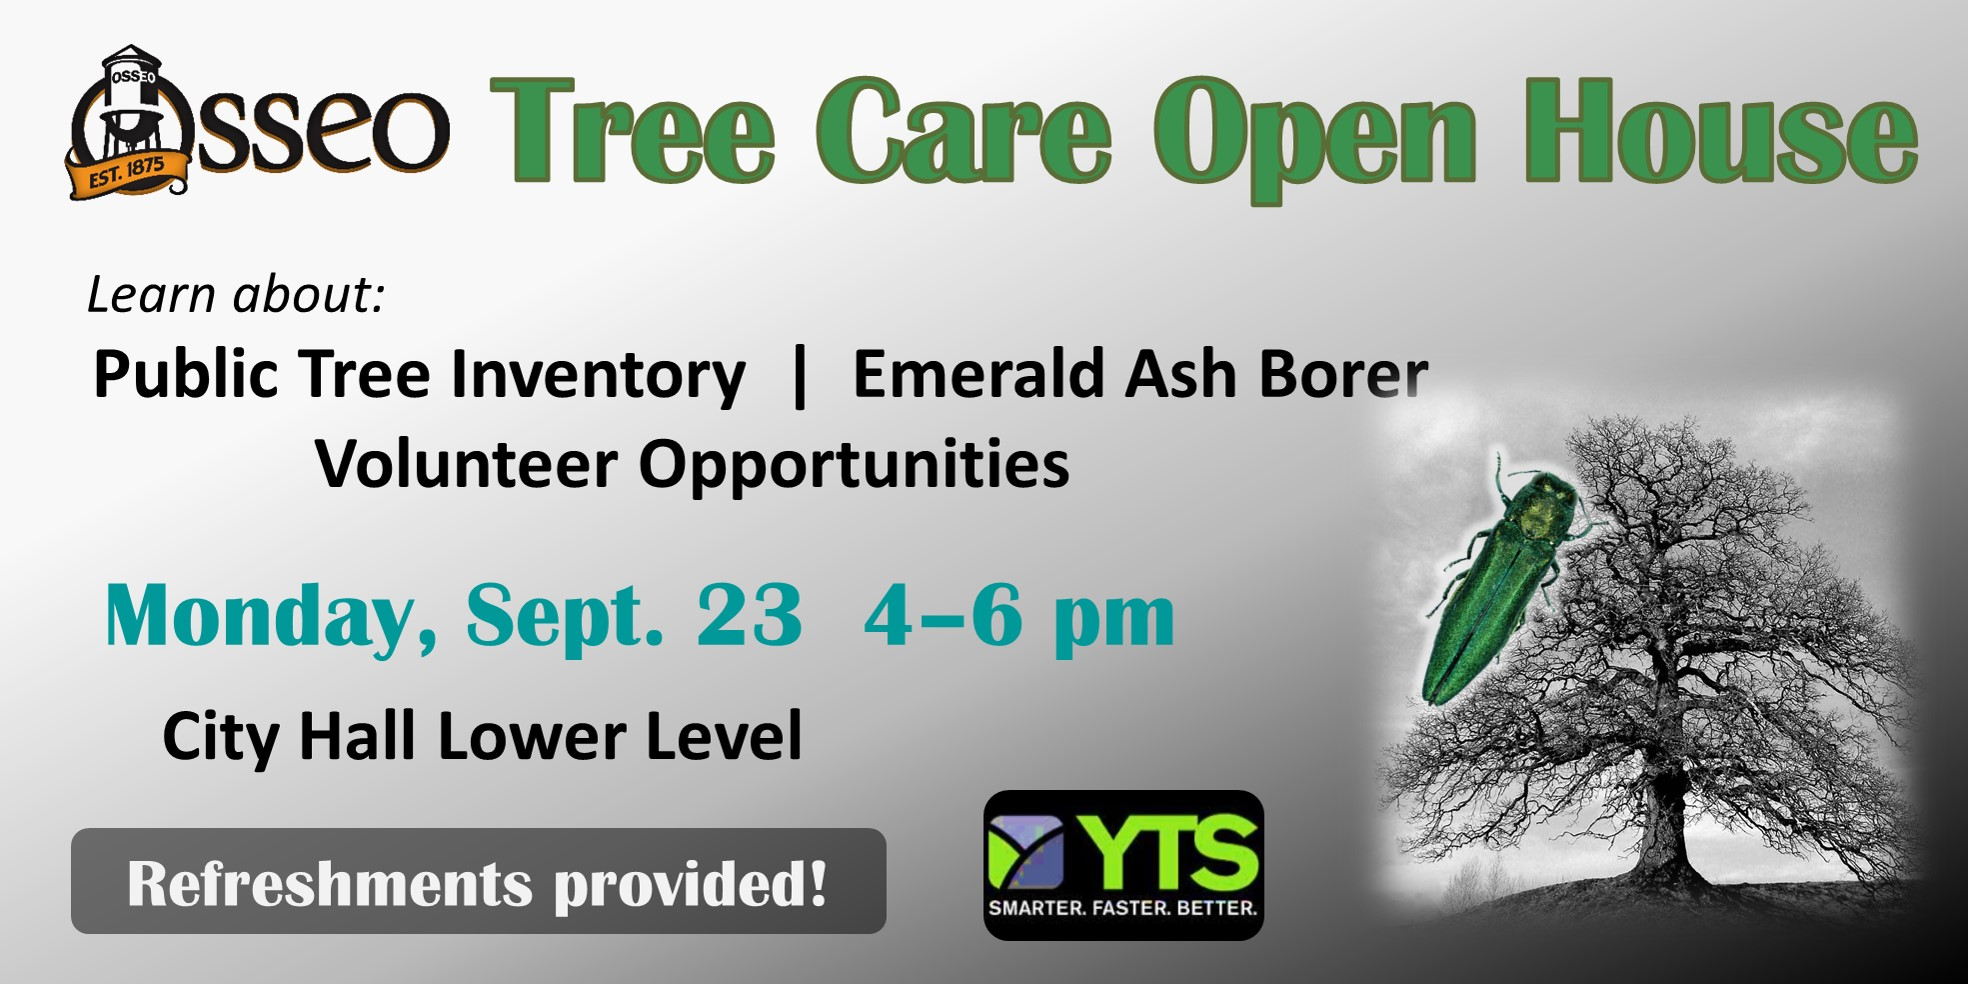 Tree Care Open House